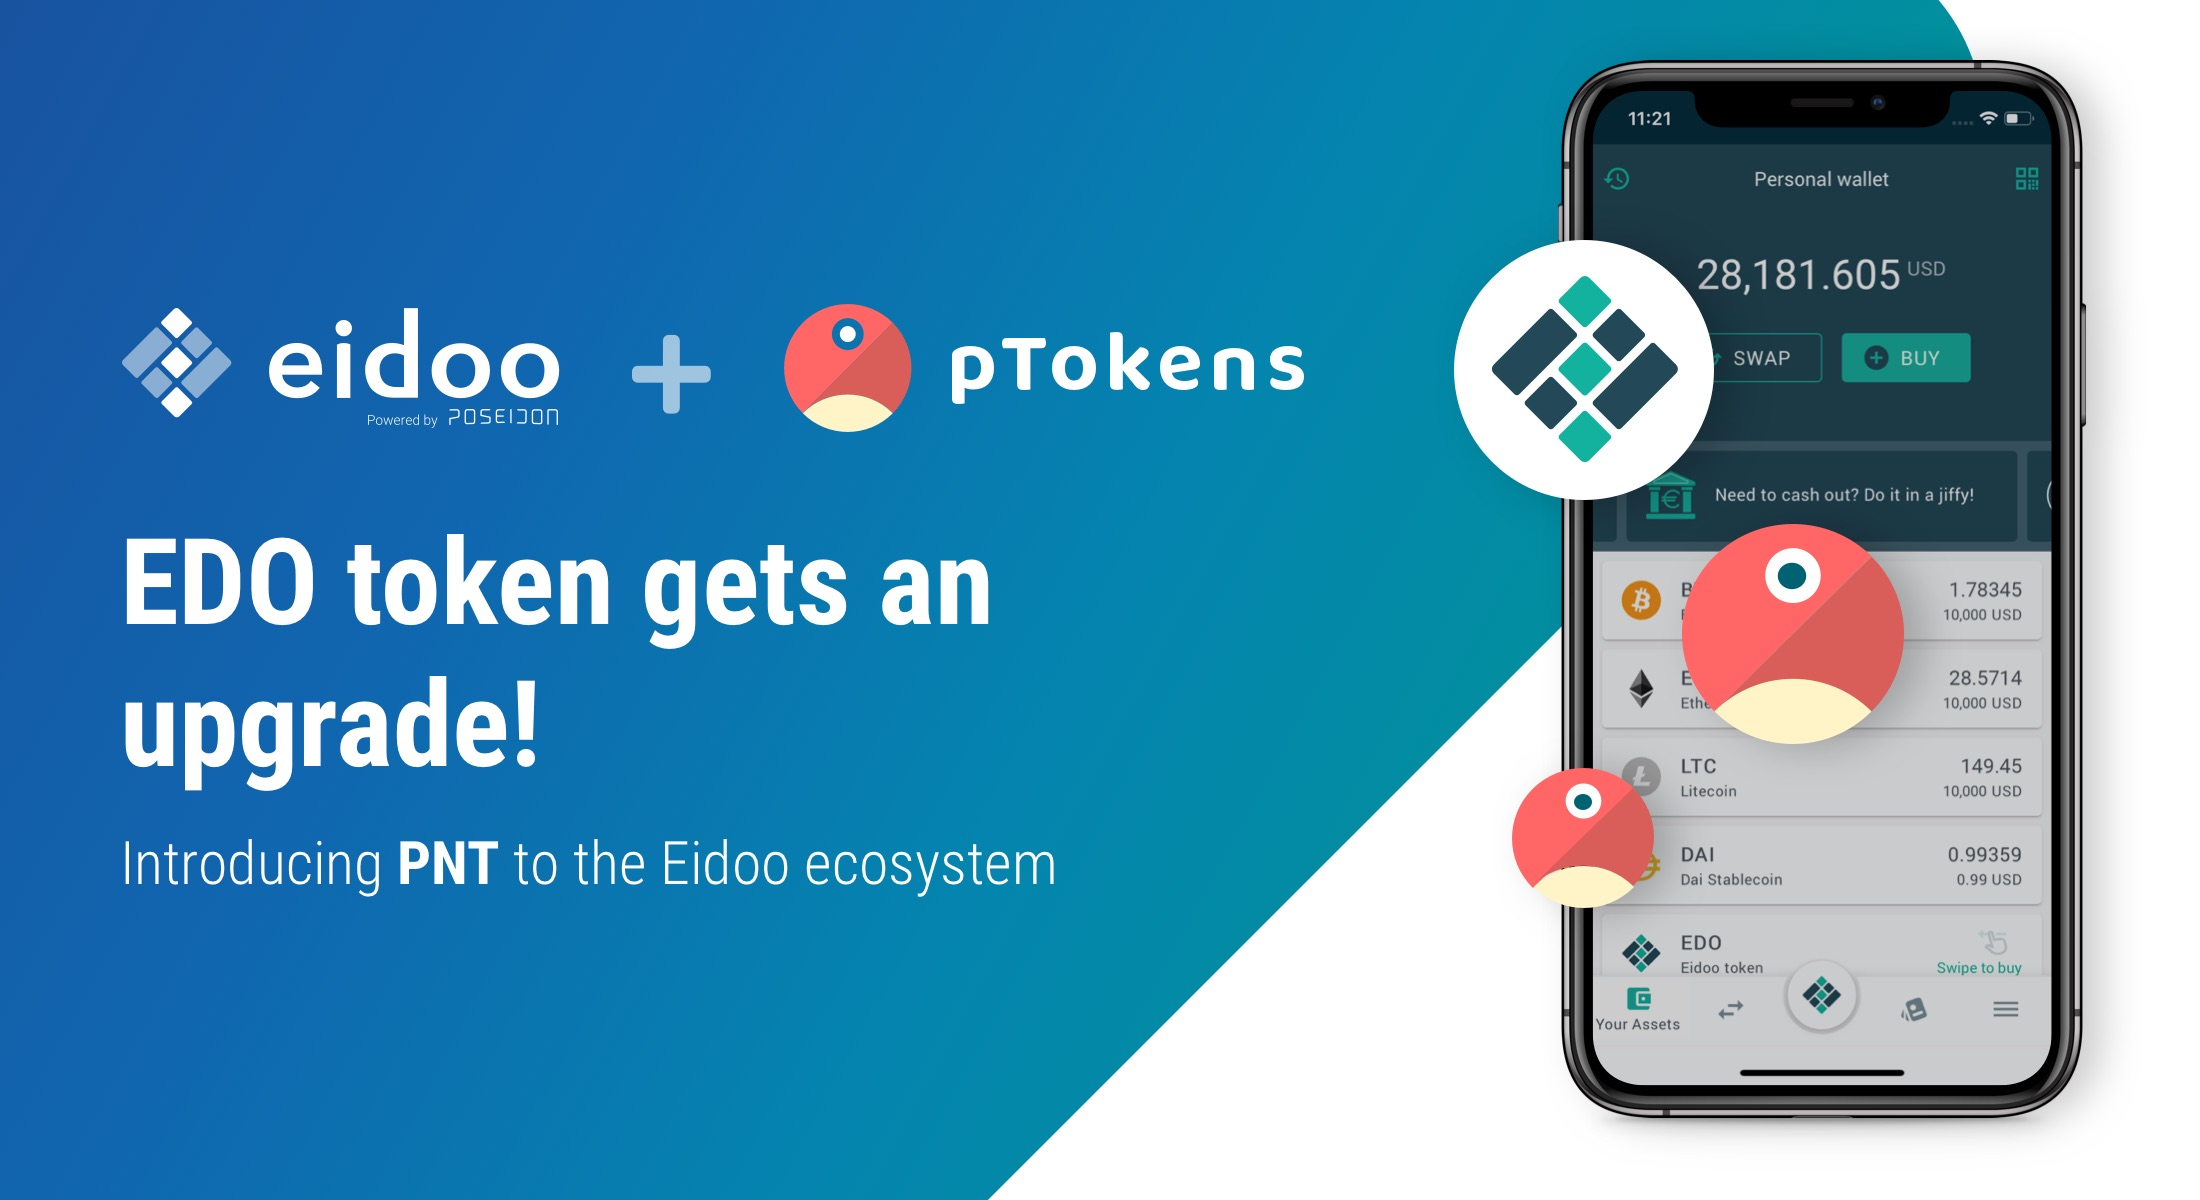 The EDO token is being upgraded!